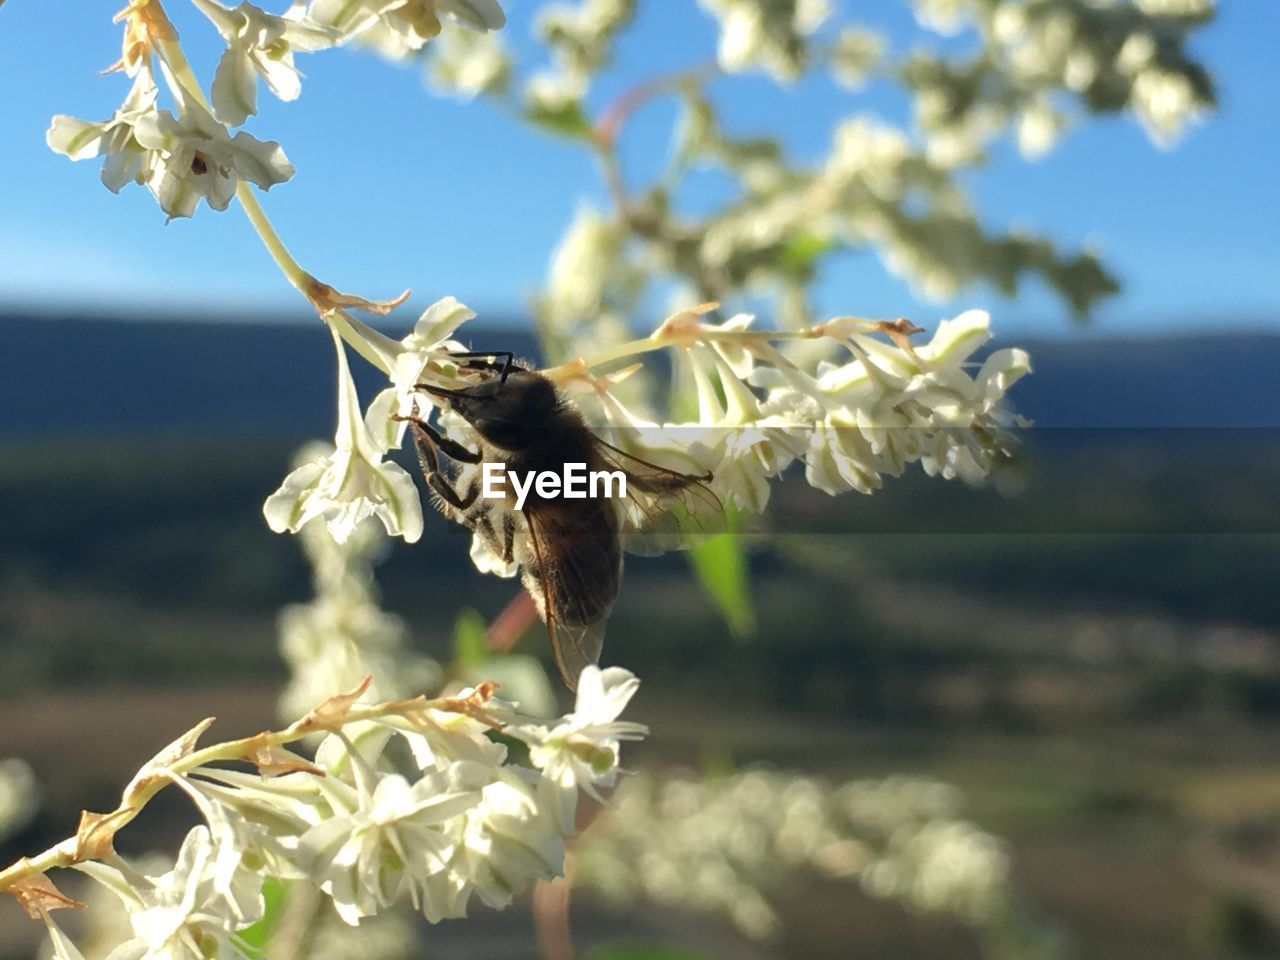 flower, flowering plant, plant, fragility, animal themes, vulnerability, animal, one animal, freshness, growth, nature, animals in the wild, beauty in nature, focus on foreground, animal wildlife, petal, close-up, no people, day, bee, flower head, outdoors, pollination